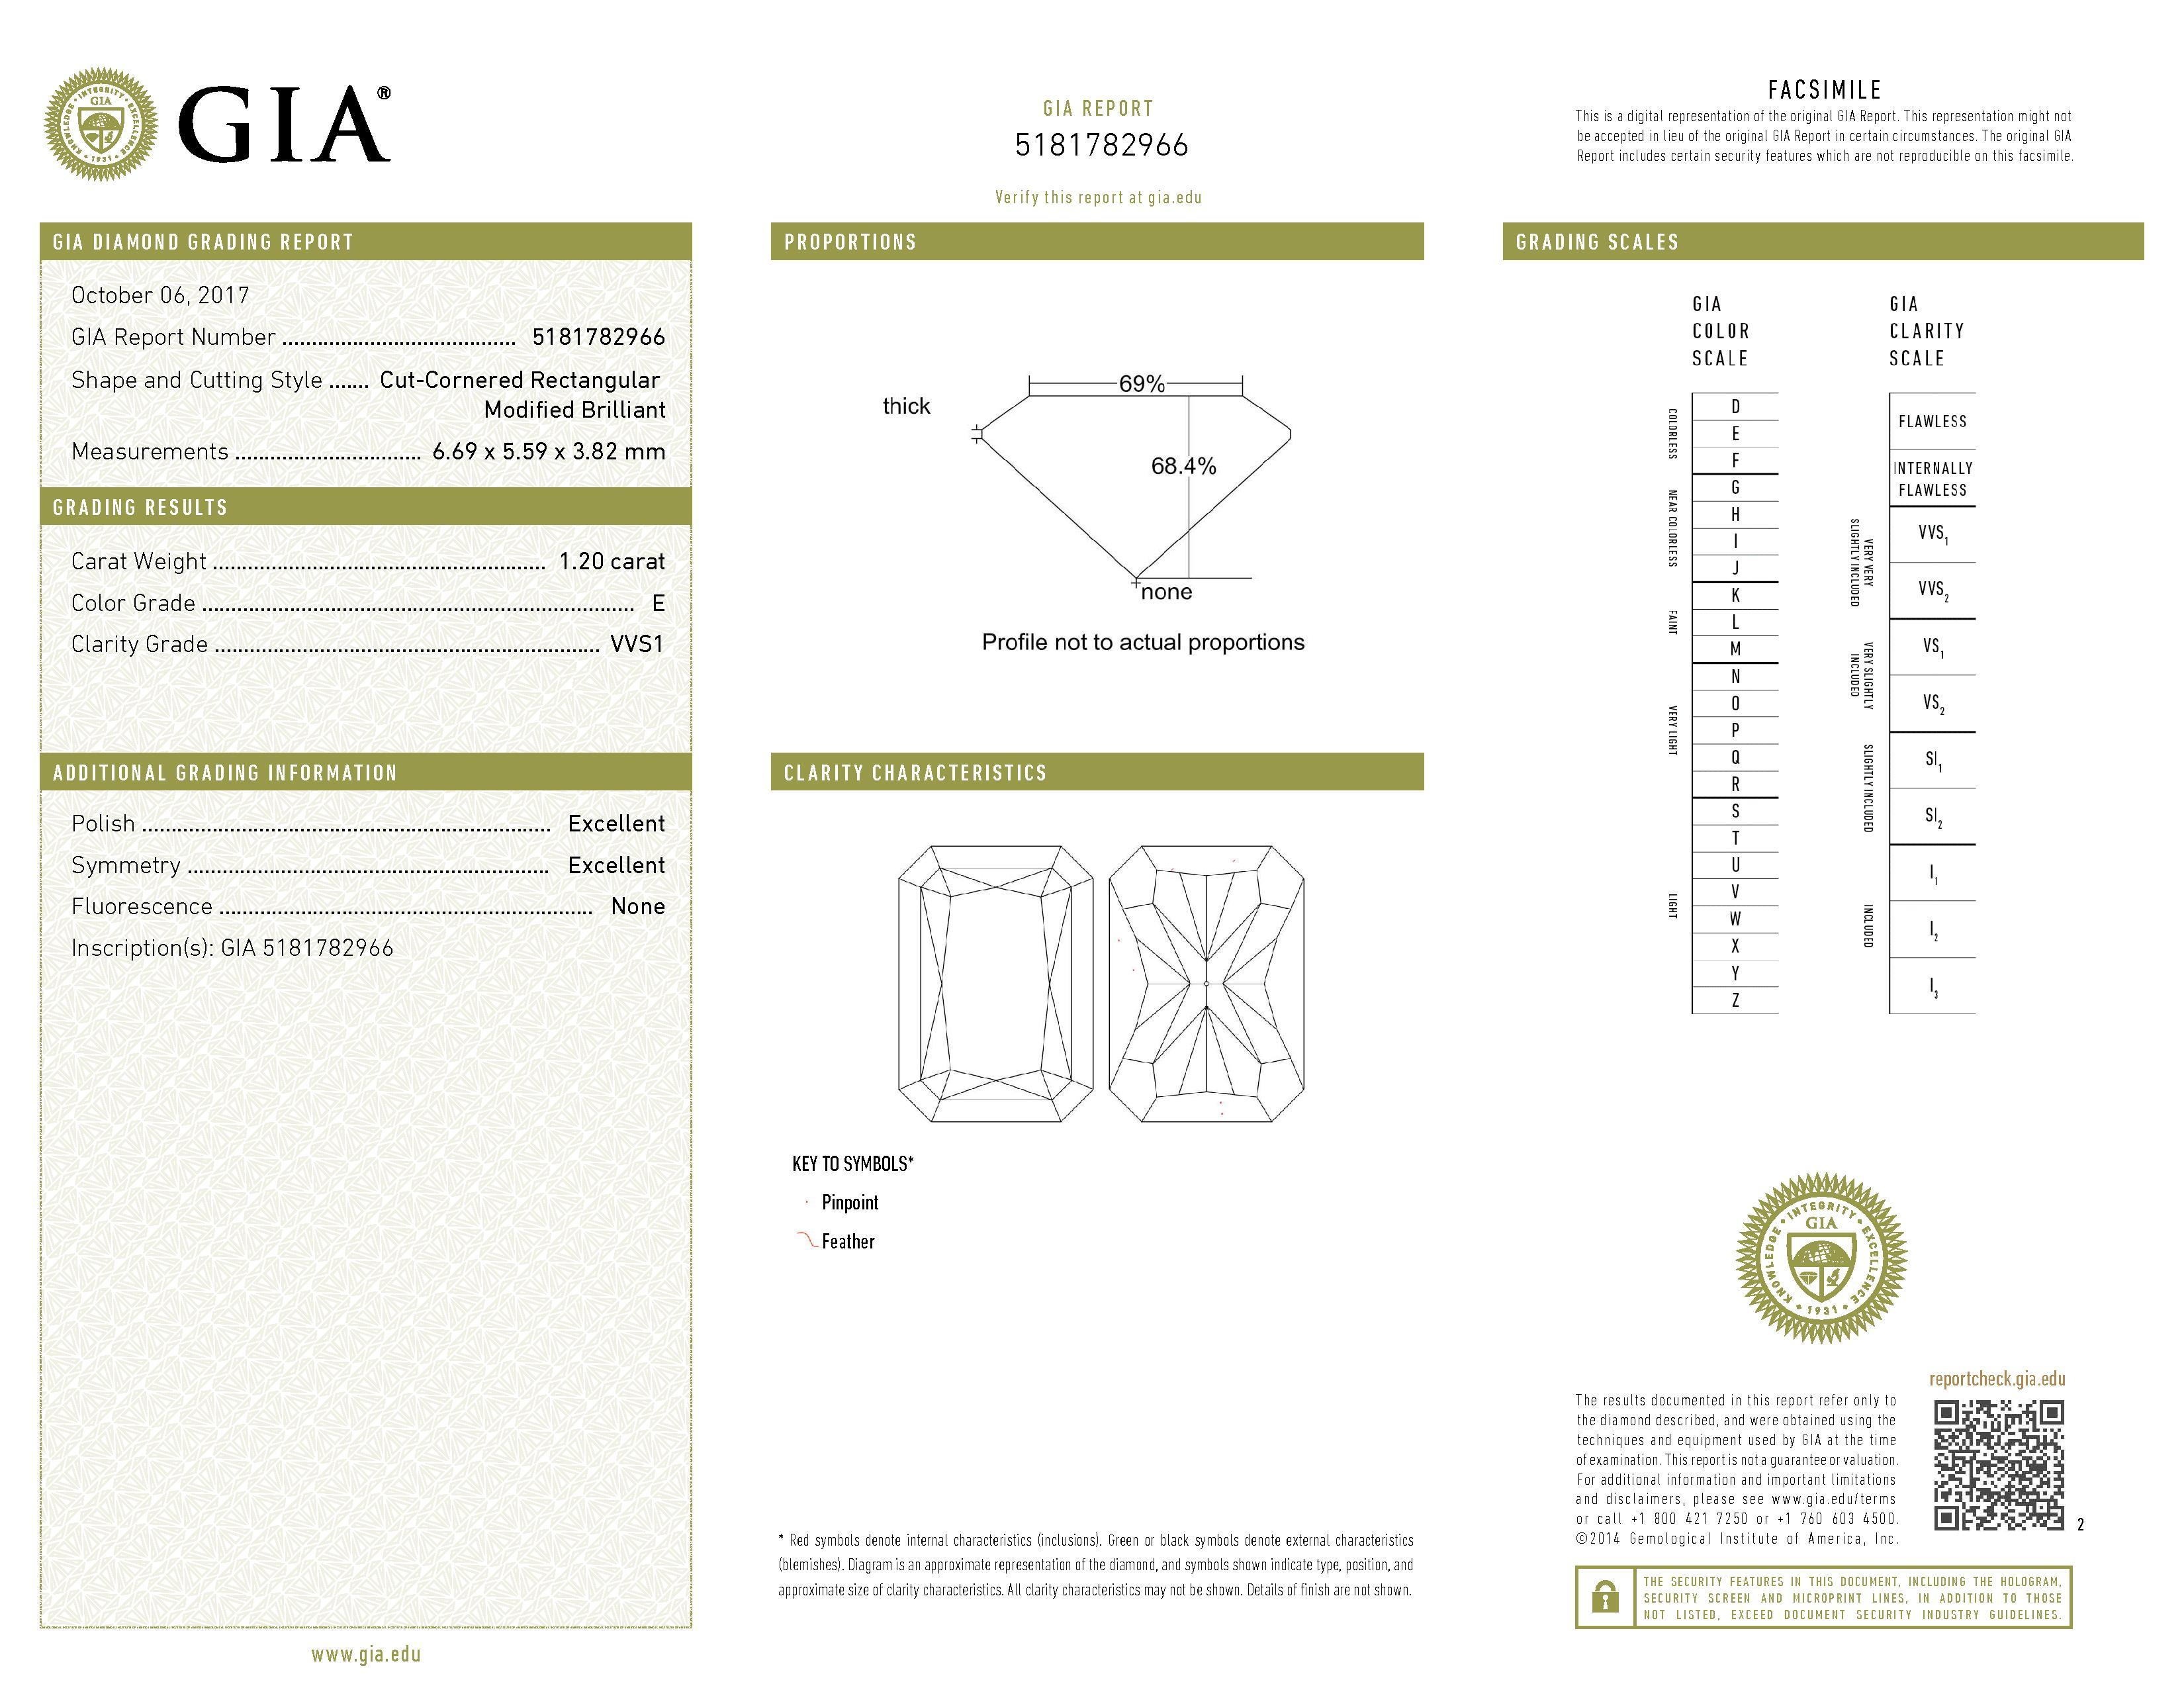 This is a 1.20 carat radiant shape, E color, VVS1 clarity natural diamond accompanied by a GIA grading report.